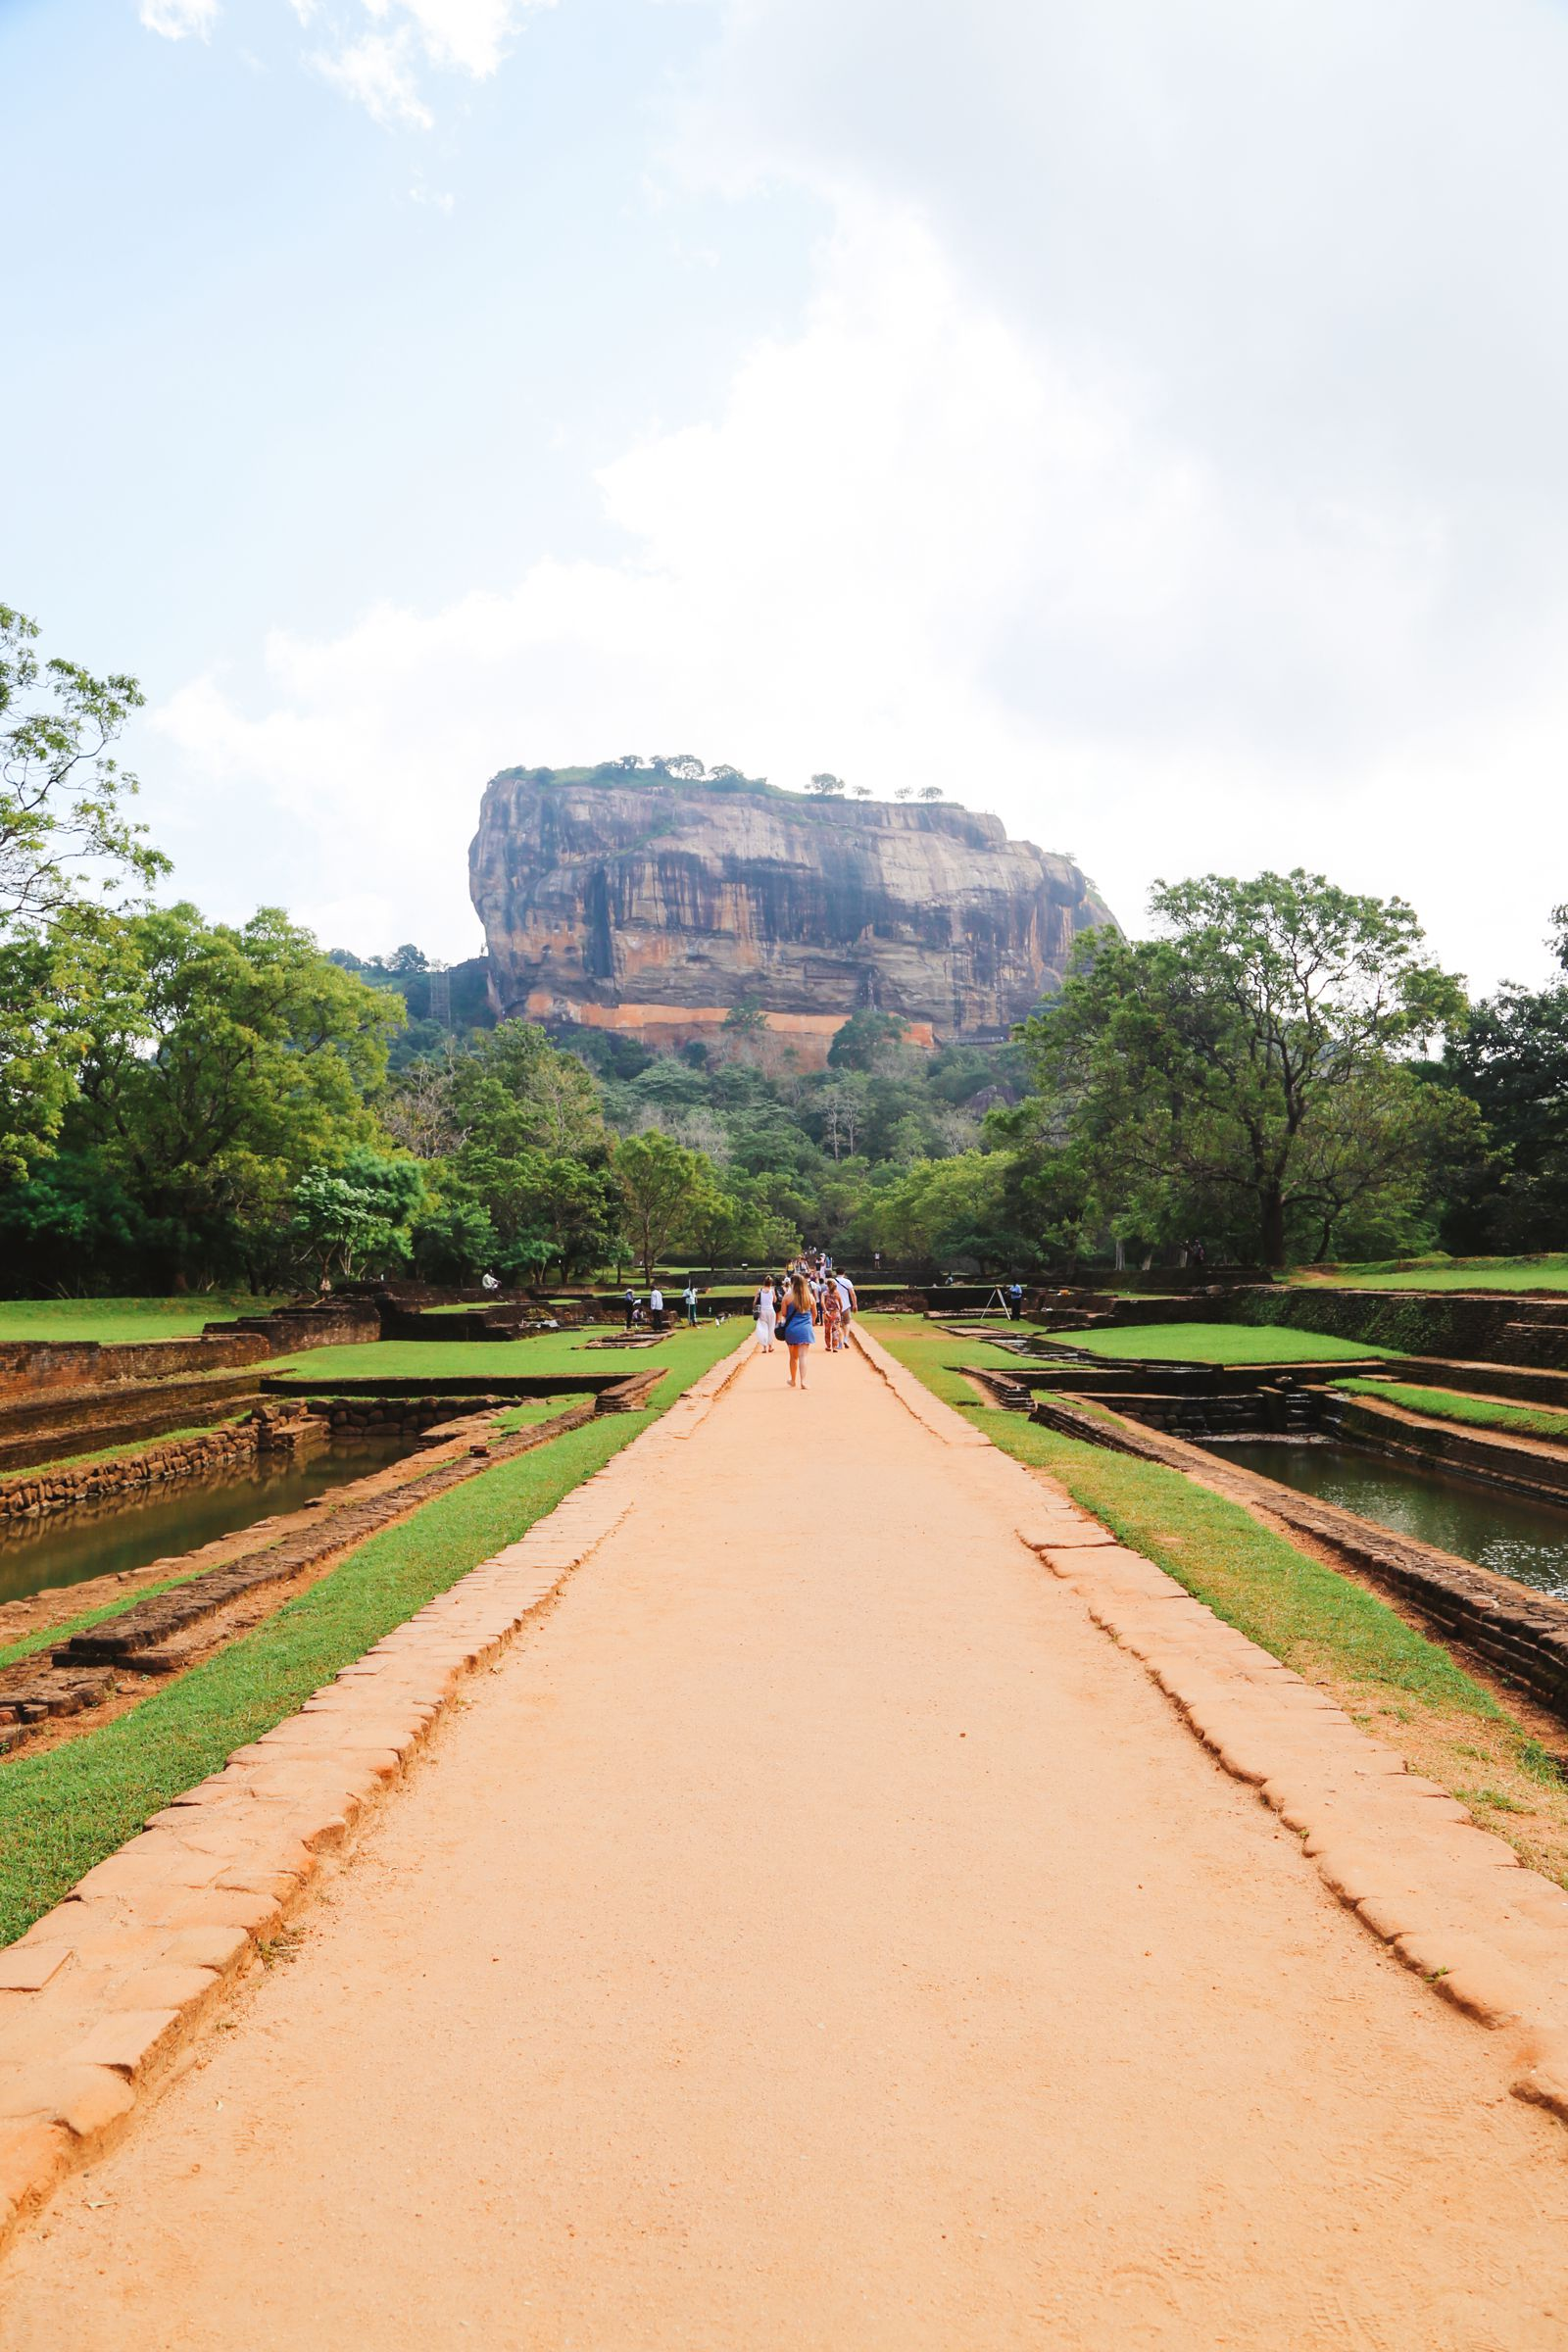 The Complete Guide To Climbing Sri Lanka's UNESCO World Heritage Site Of Sigiriya - Lion Rock (10)